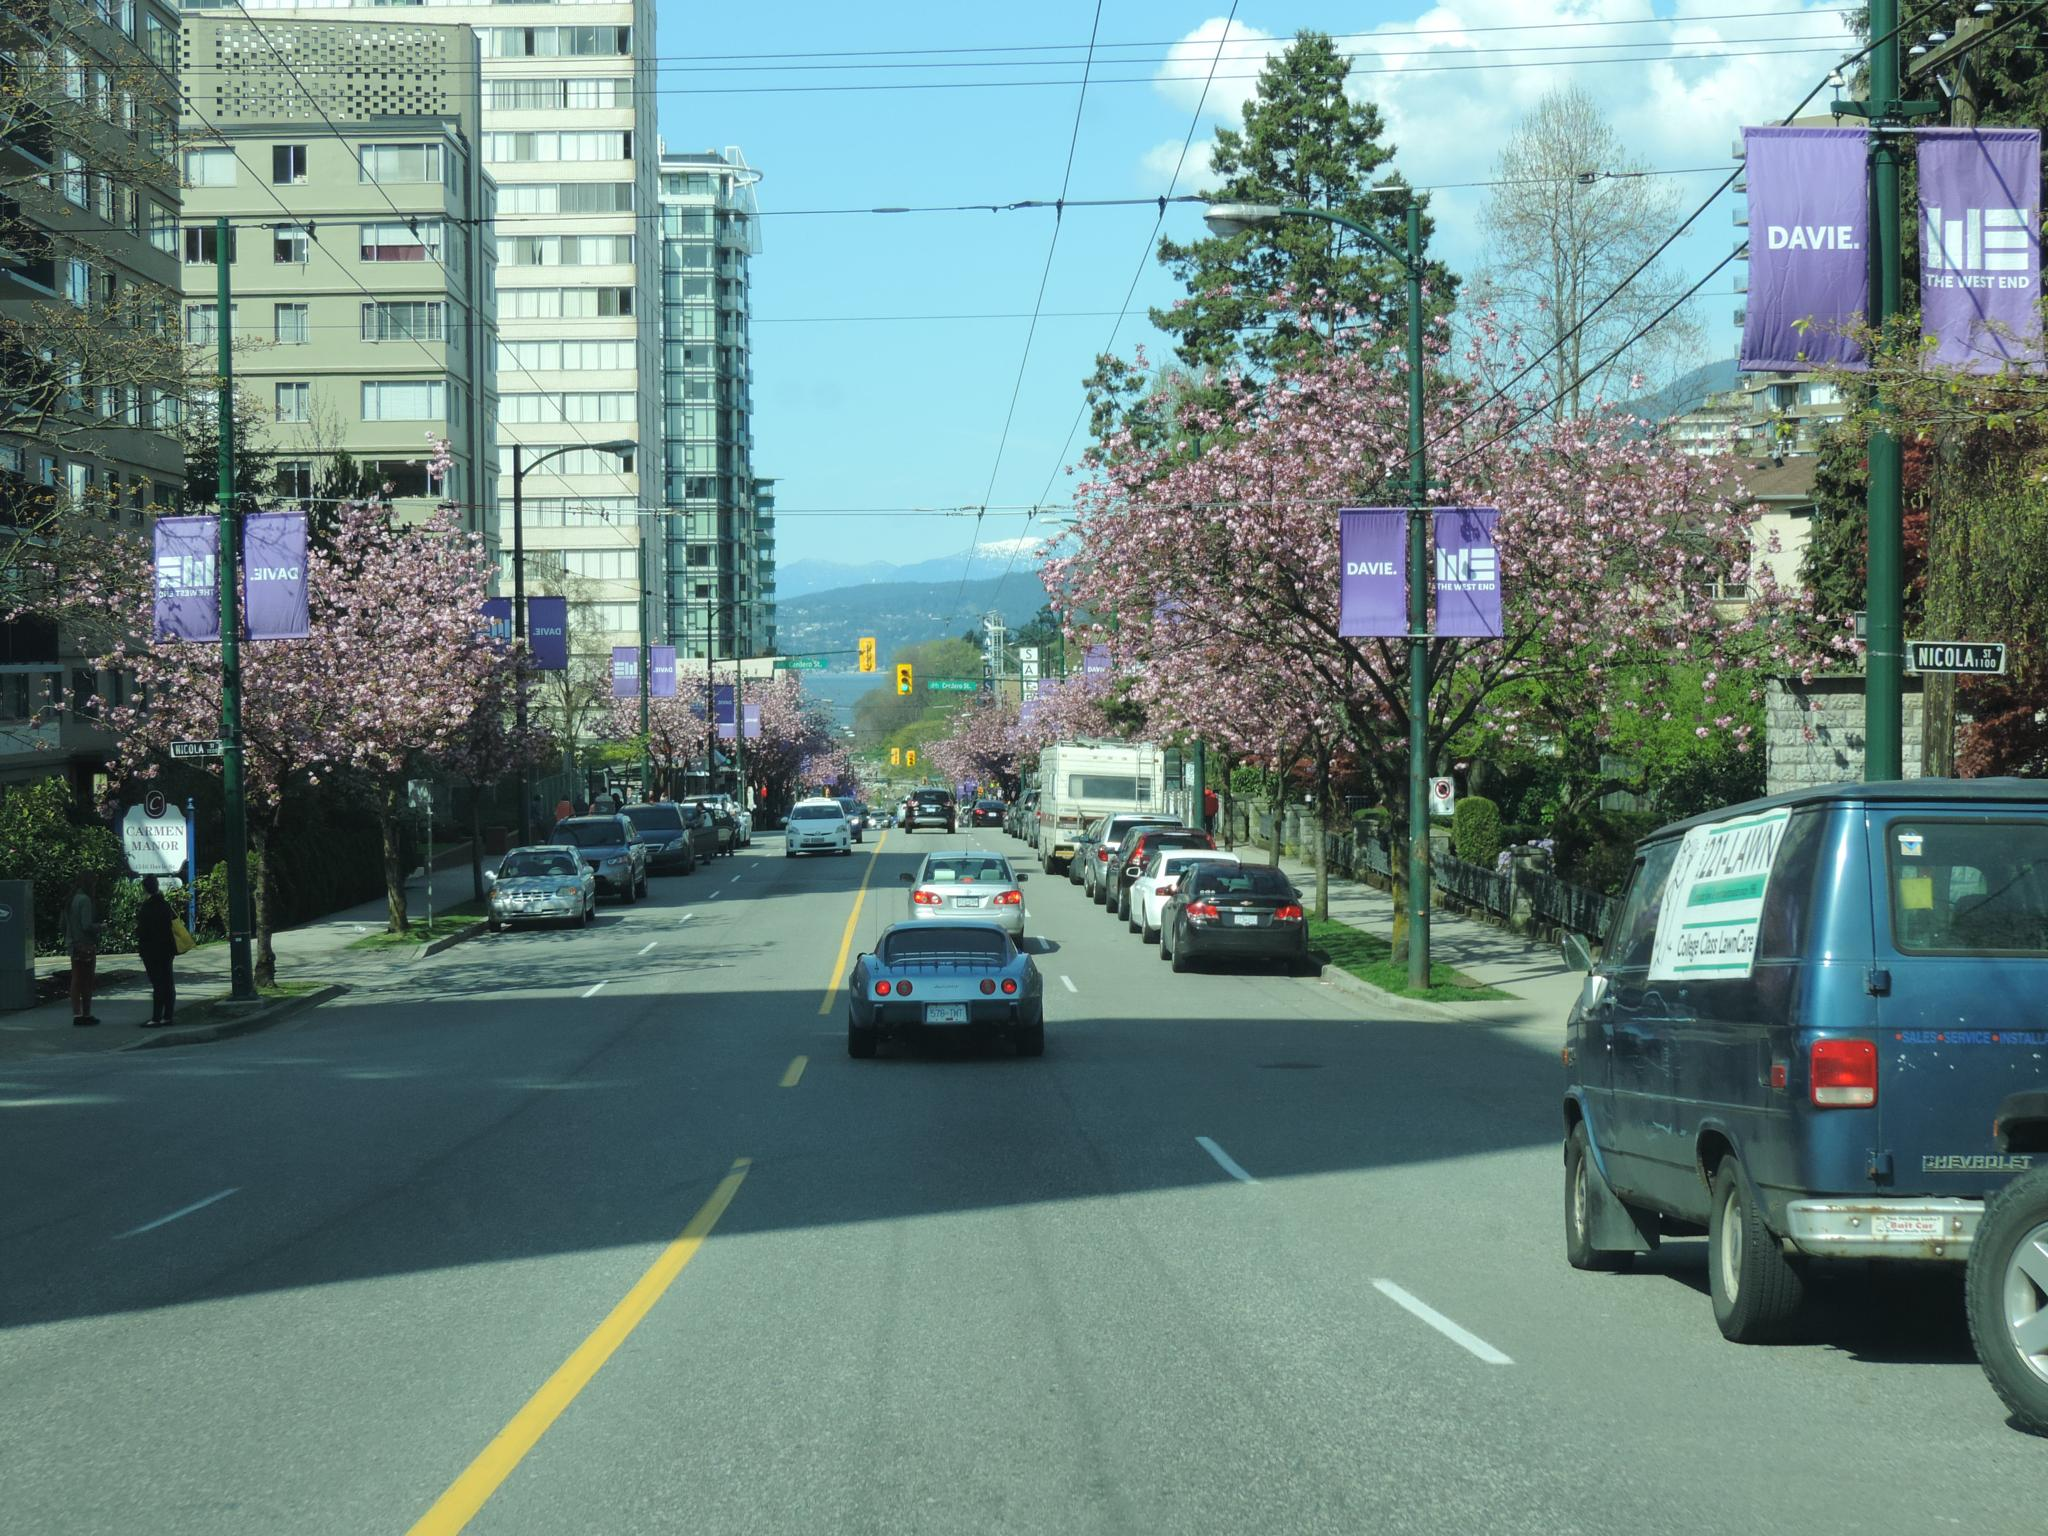 Davie Street, Vancouver. by henrywall63